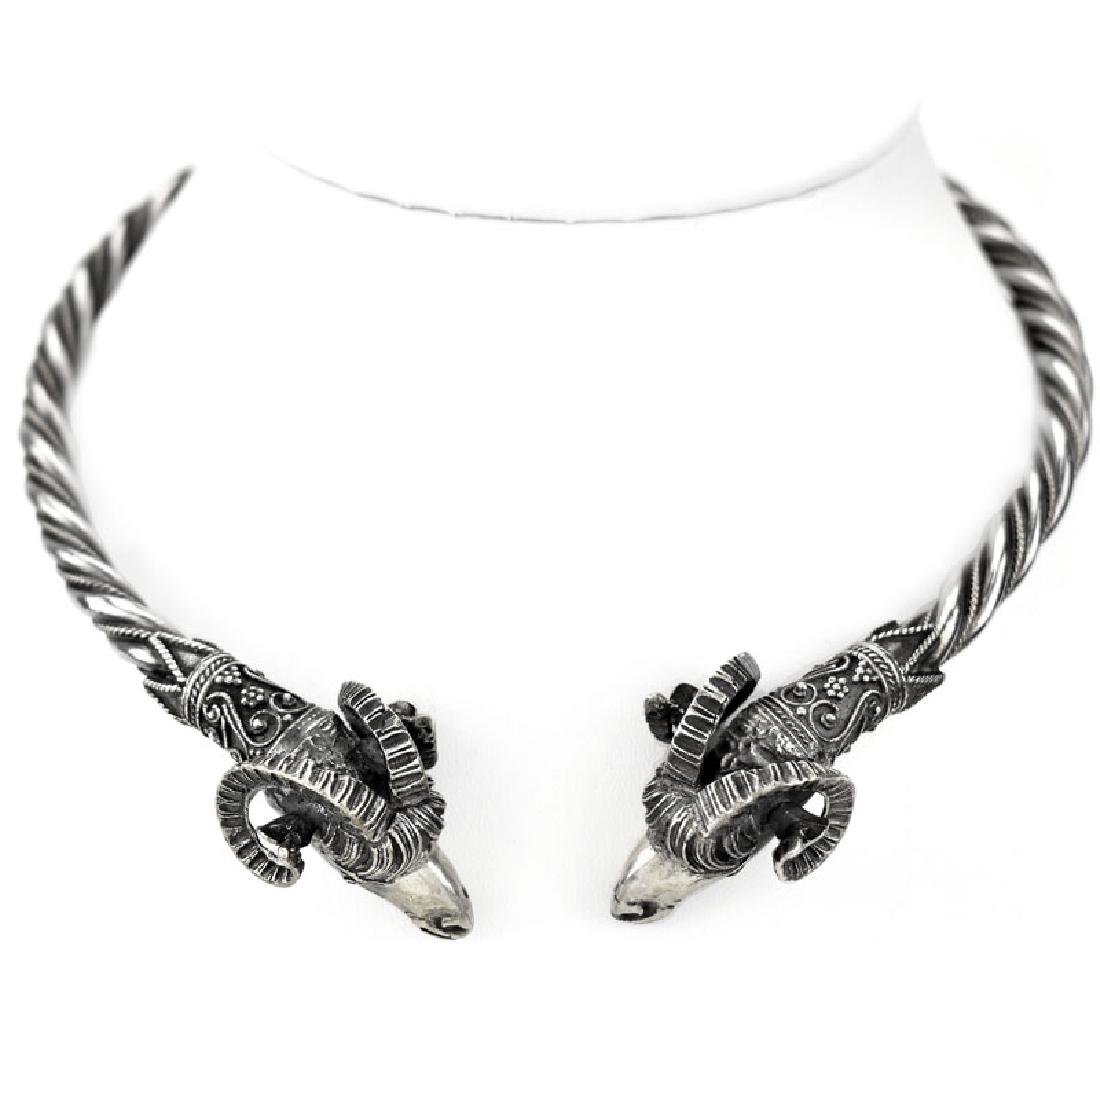 Vintage Sterling Silver Rams Head Hinged Choker